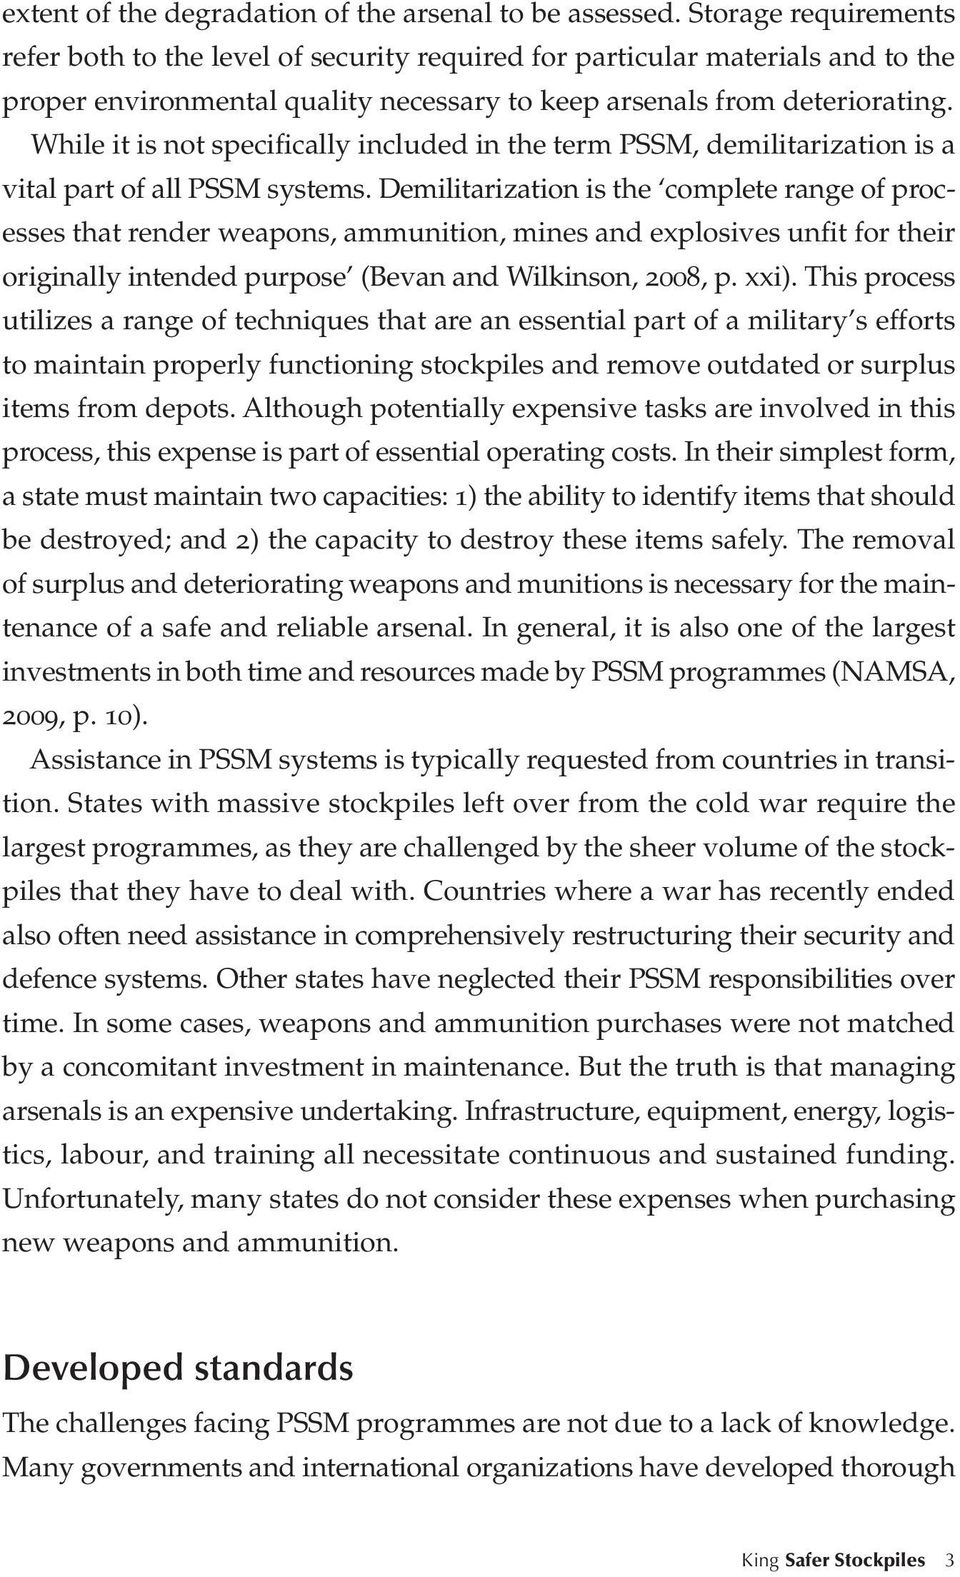 While it is not specifically included in the term PSSM, demilitarization is a vital part of all PSSM systems.